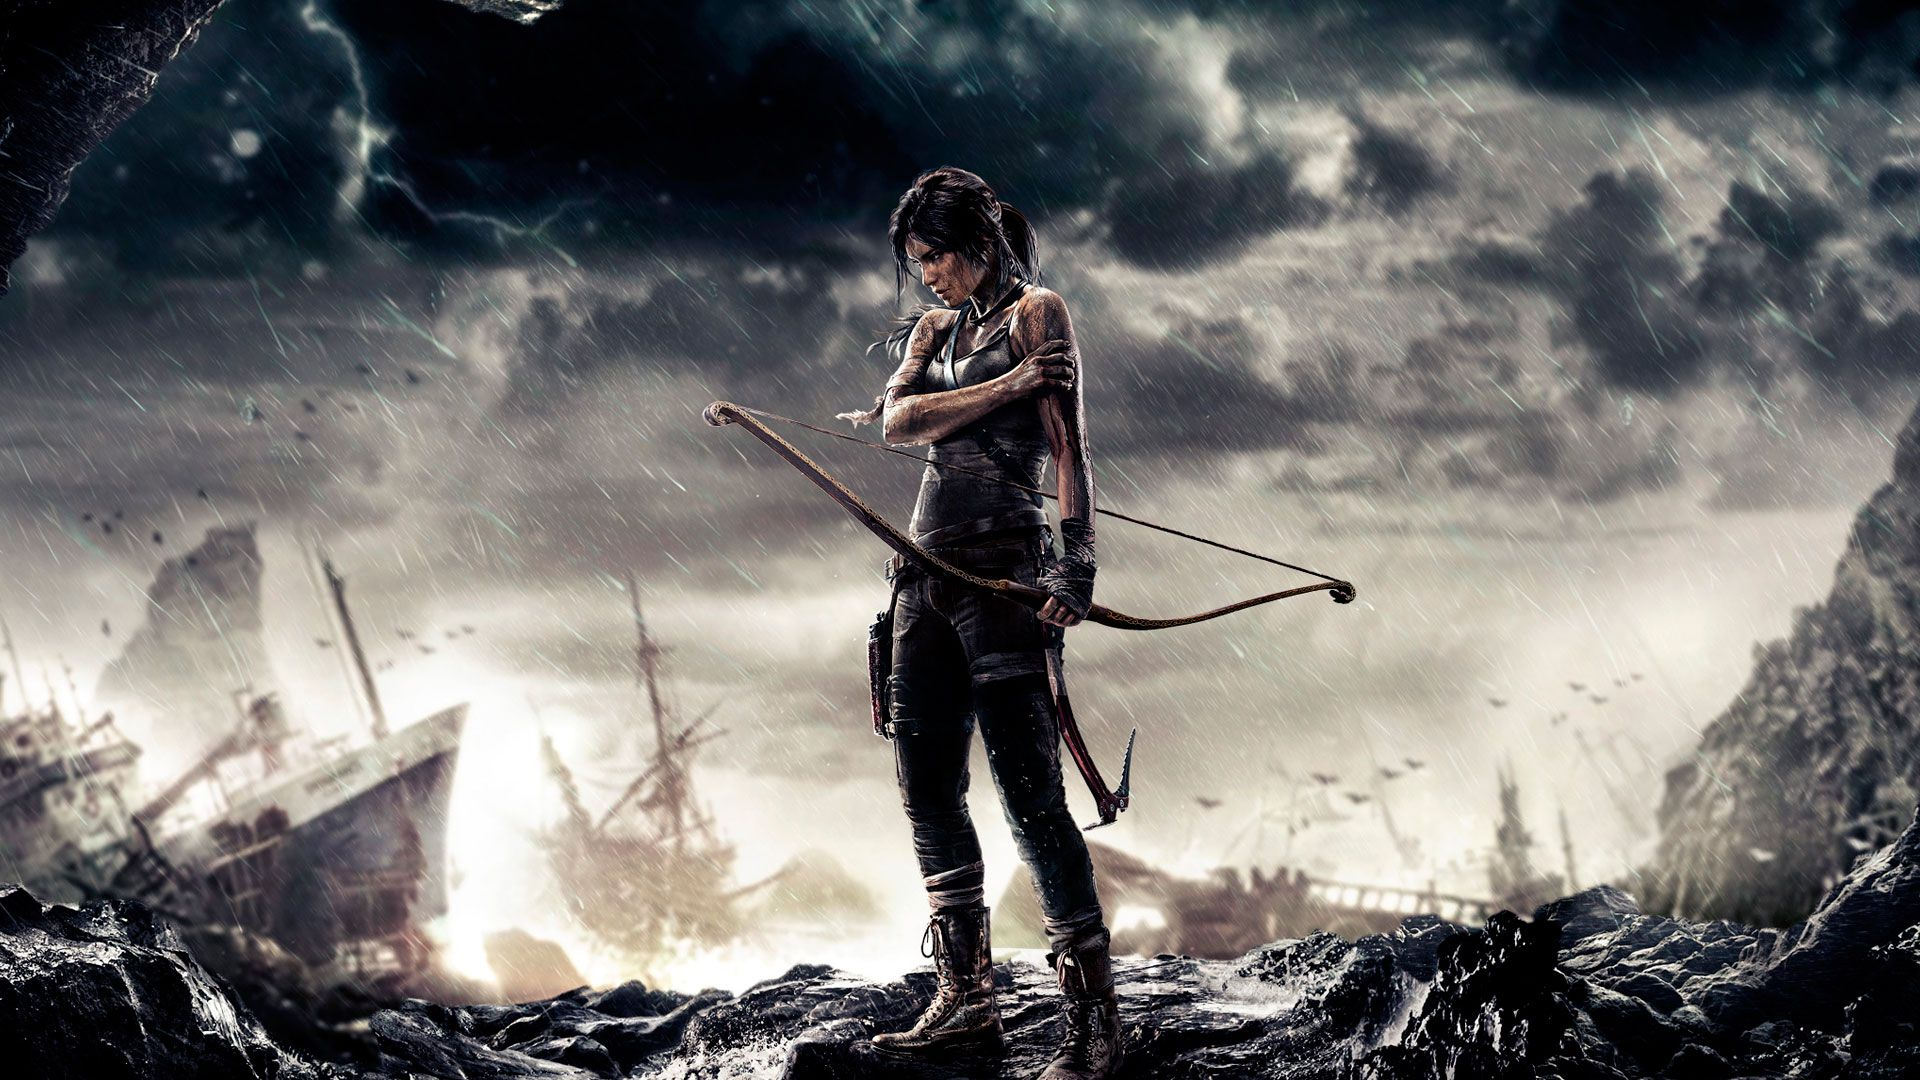 Tomb Raider Wallpapers Top Free Tomb Raider Backgrounds Wallpaperaccess